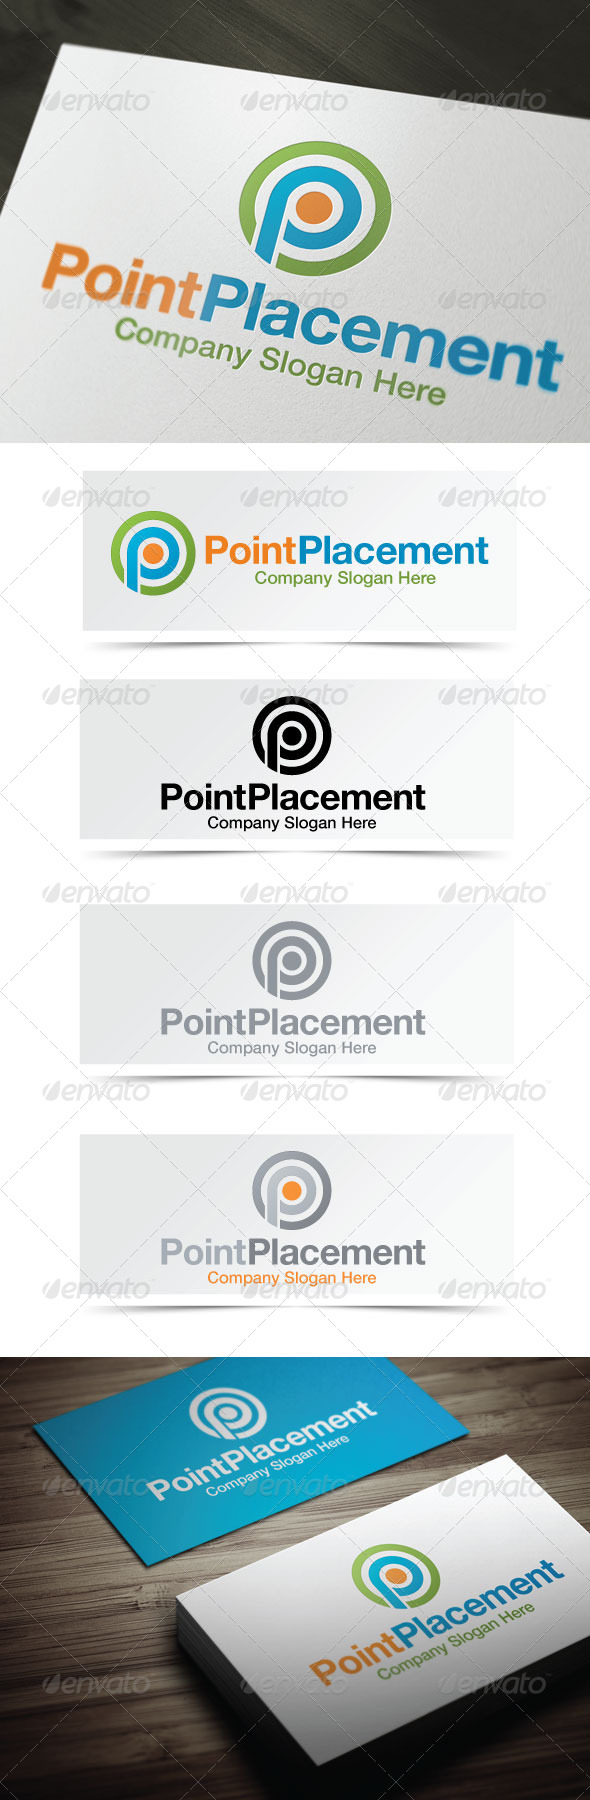 GraphicRiver Point Placement 4106028